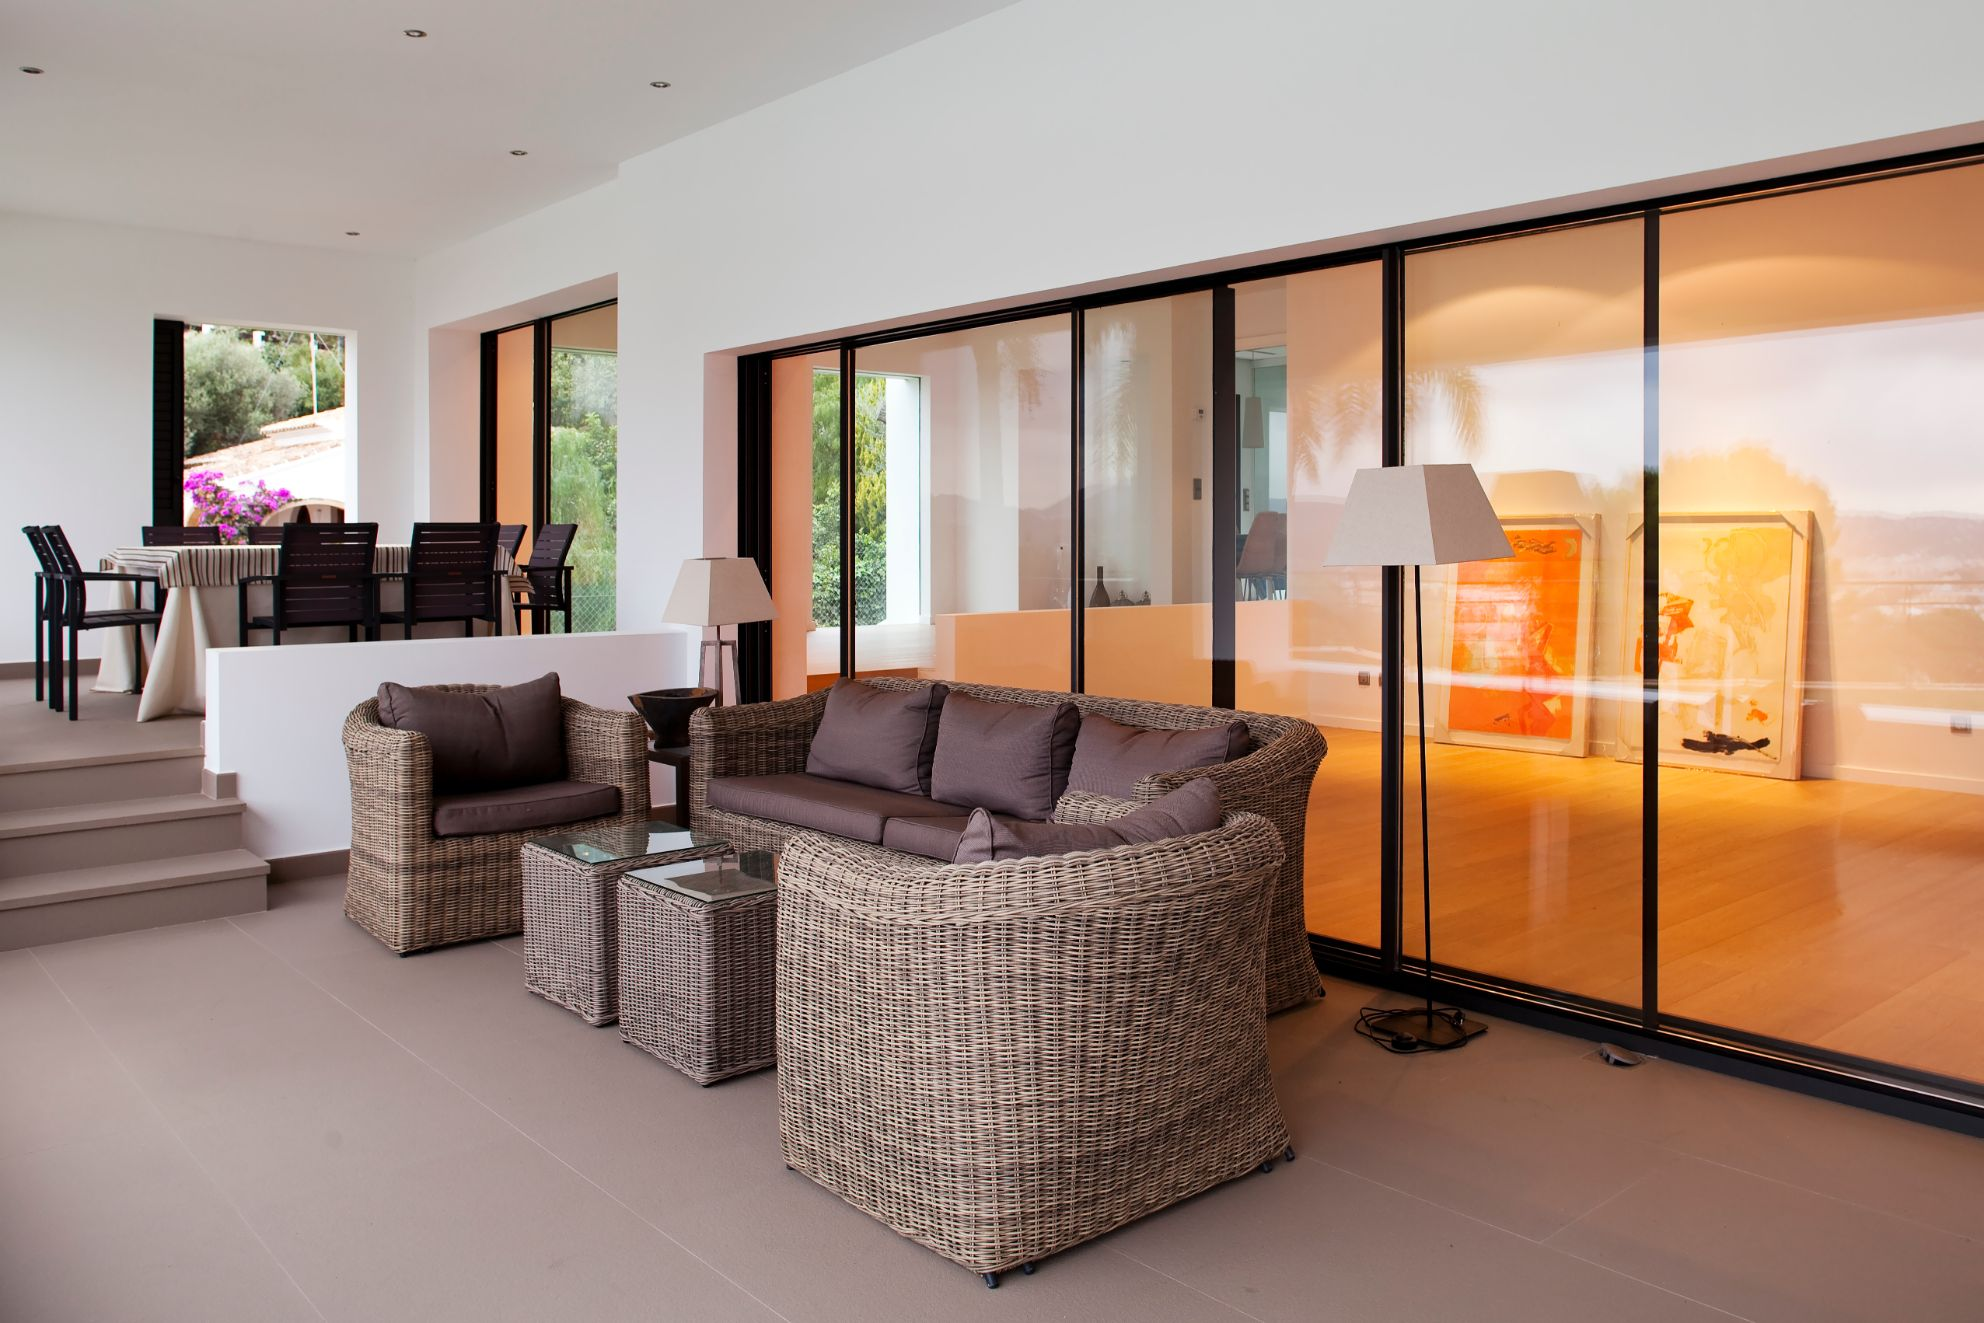 Introducing The New Cortizo Bifold Doors & Sliding Doors From GHI